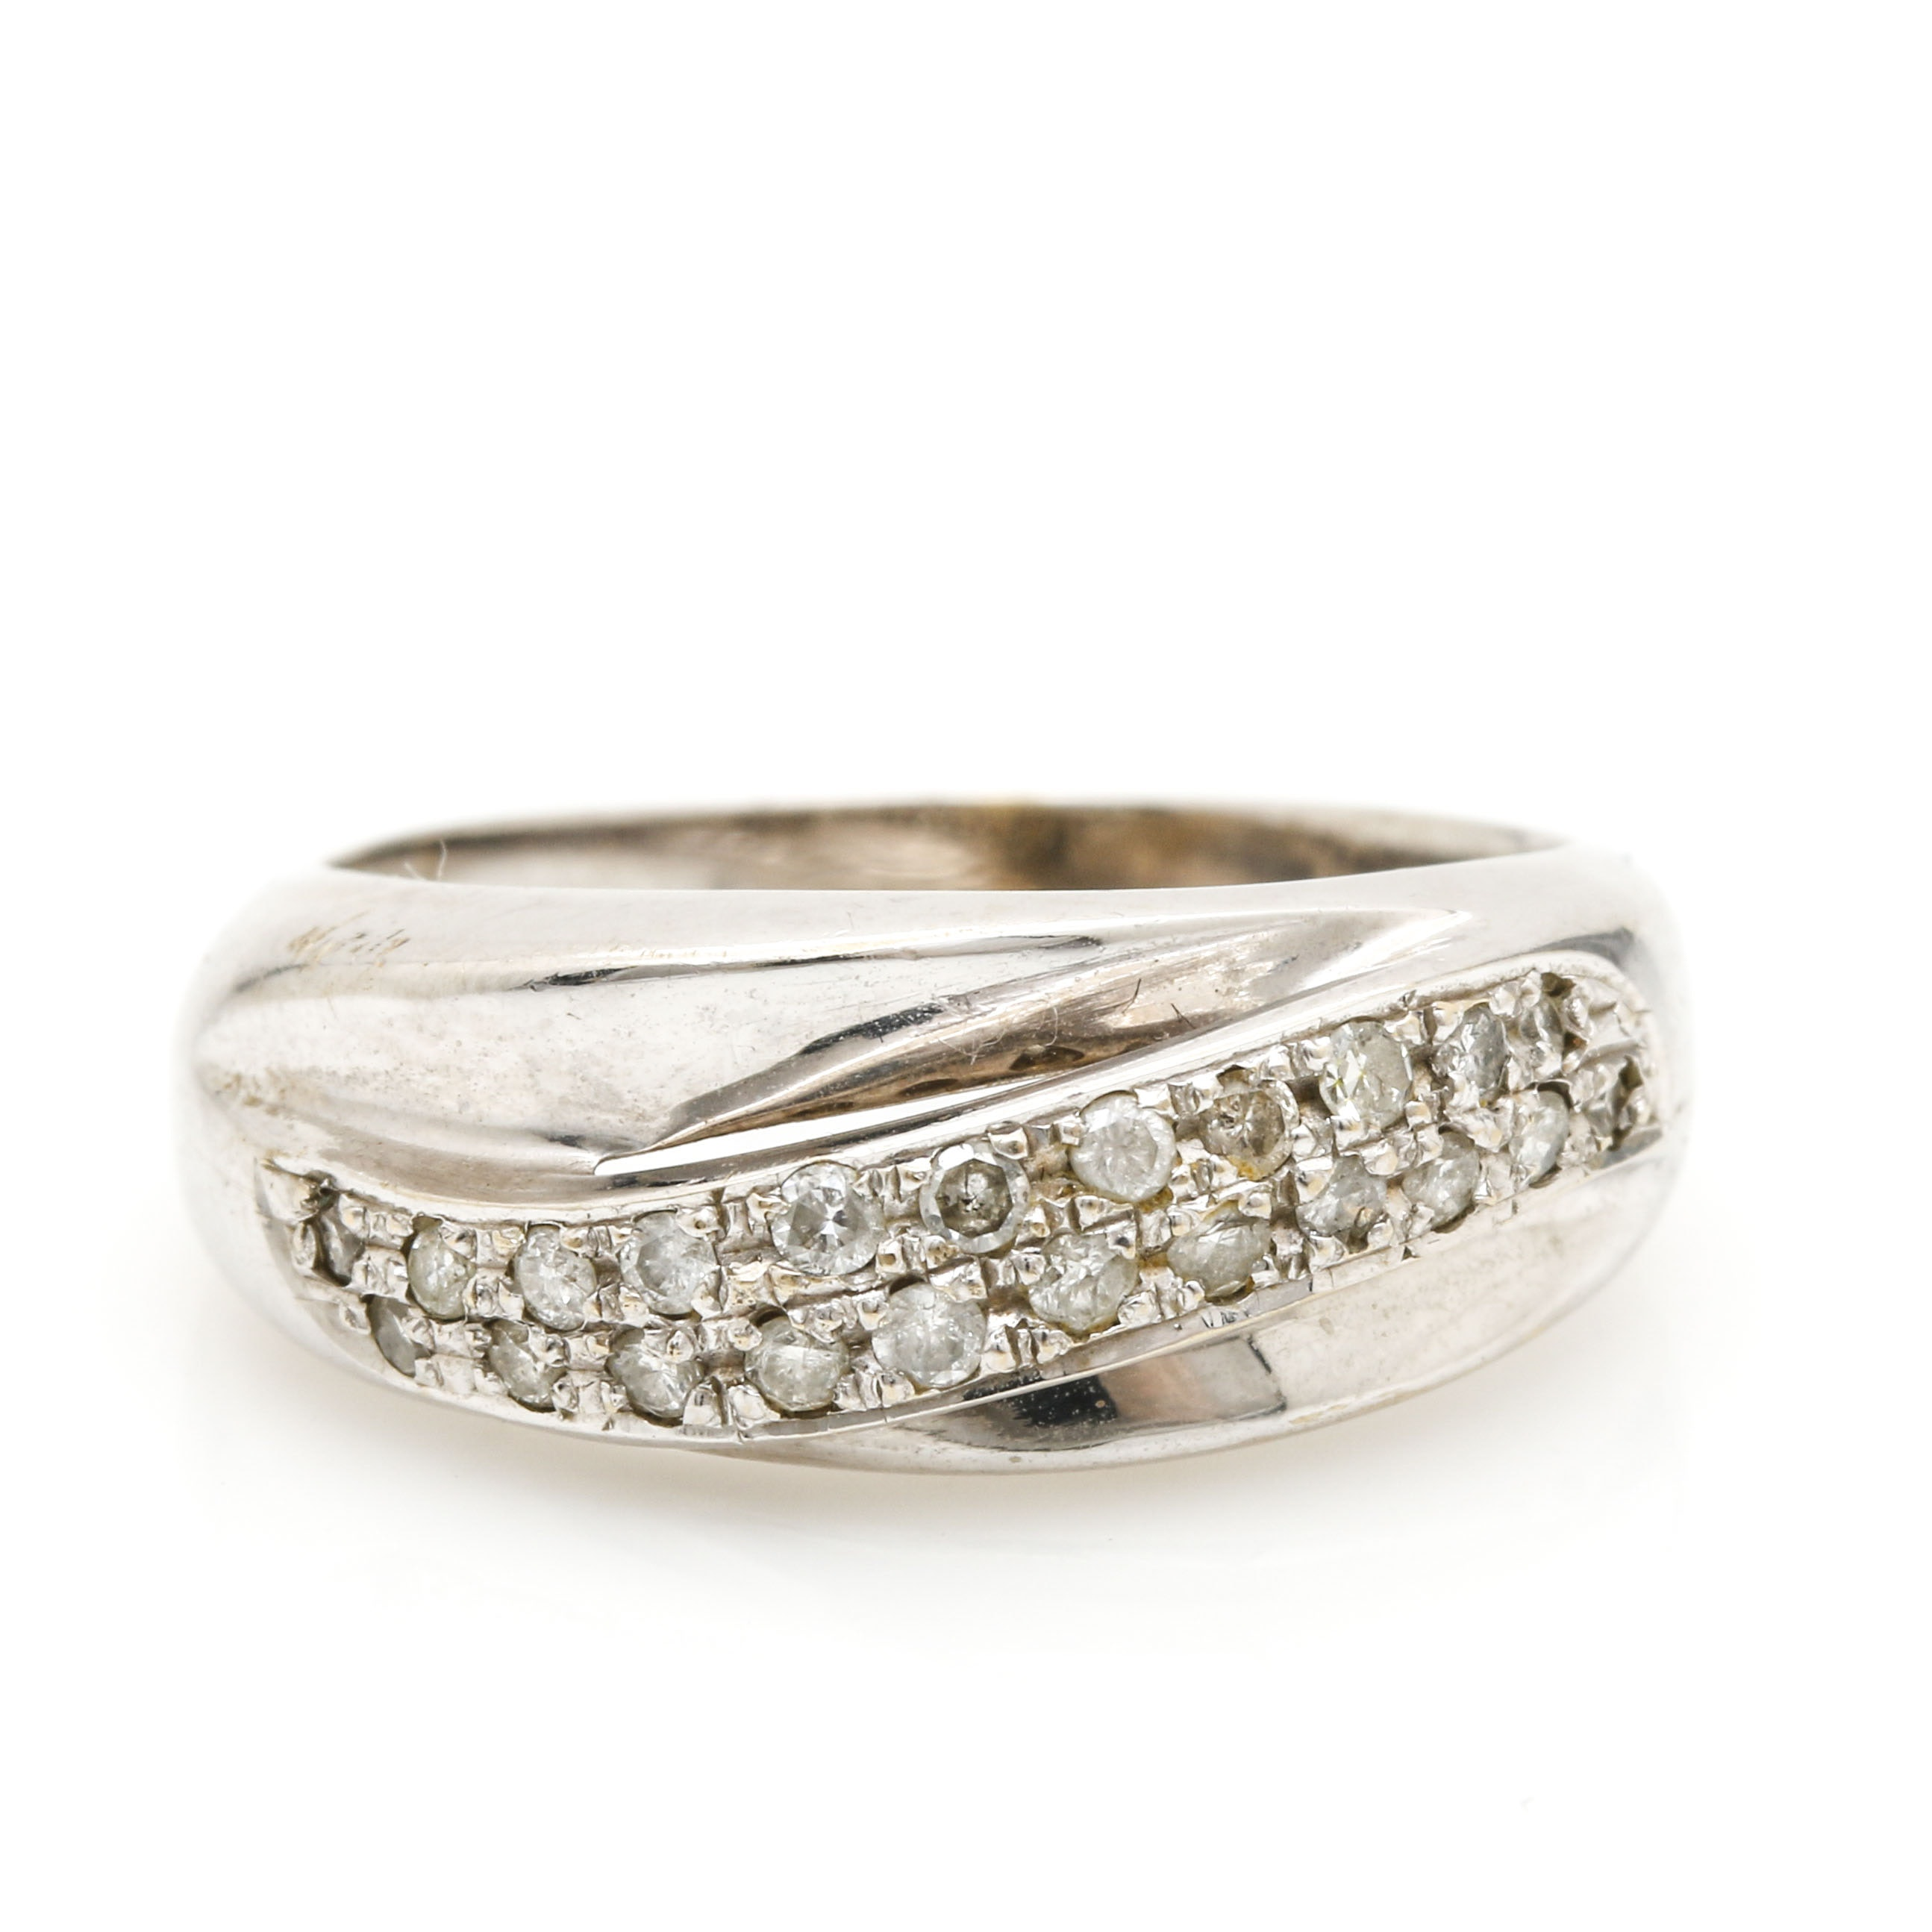 18K White Gold Diamond Accented Ring